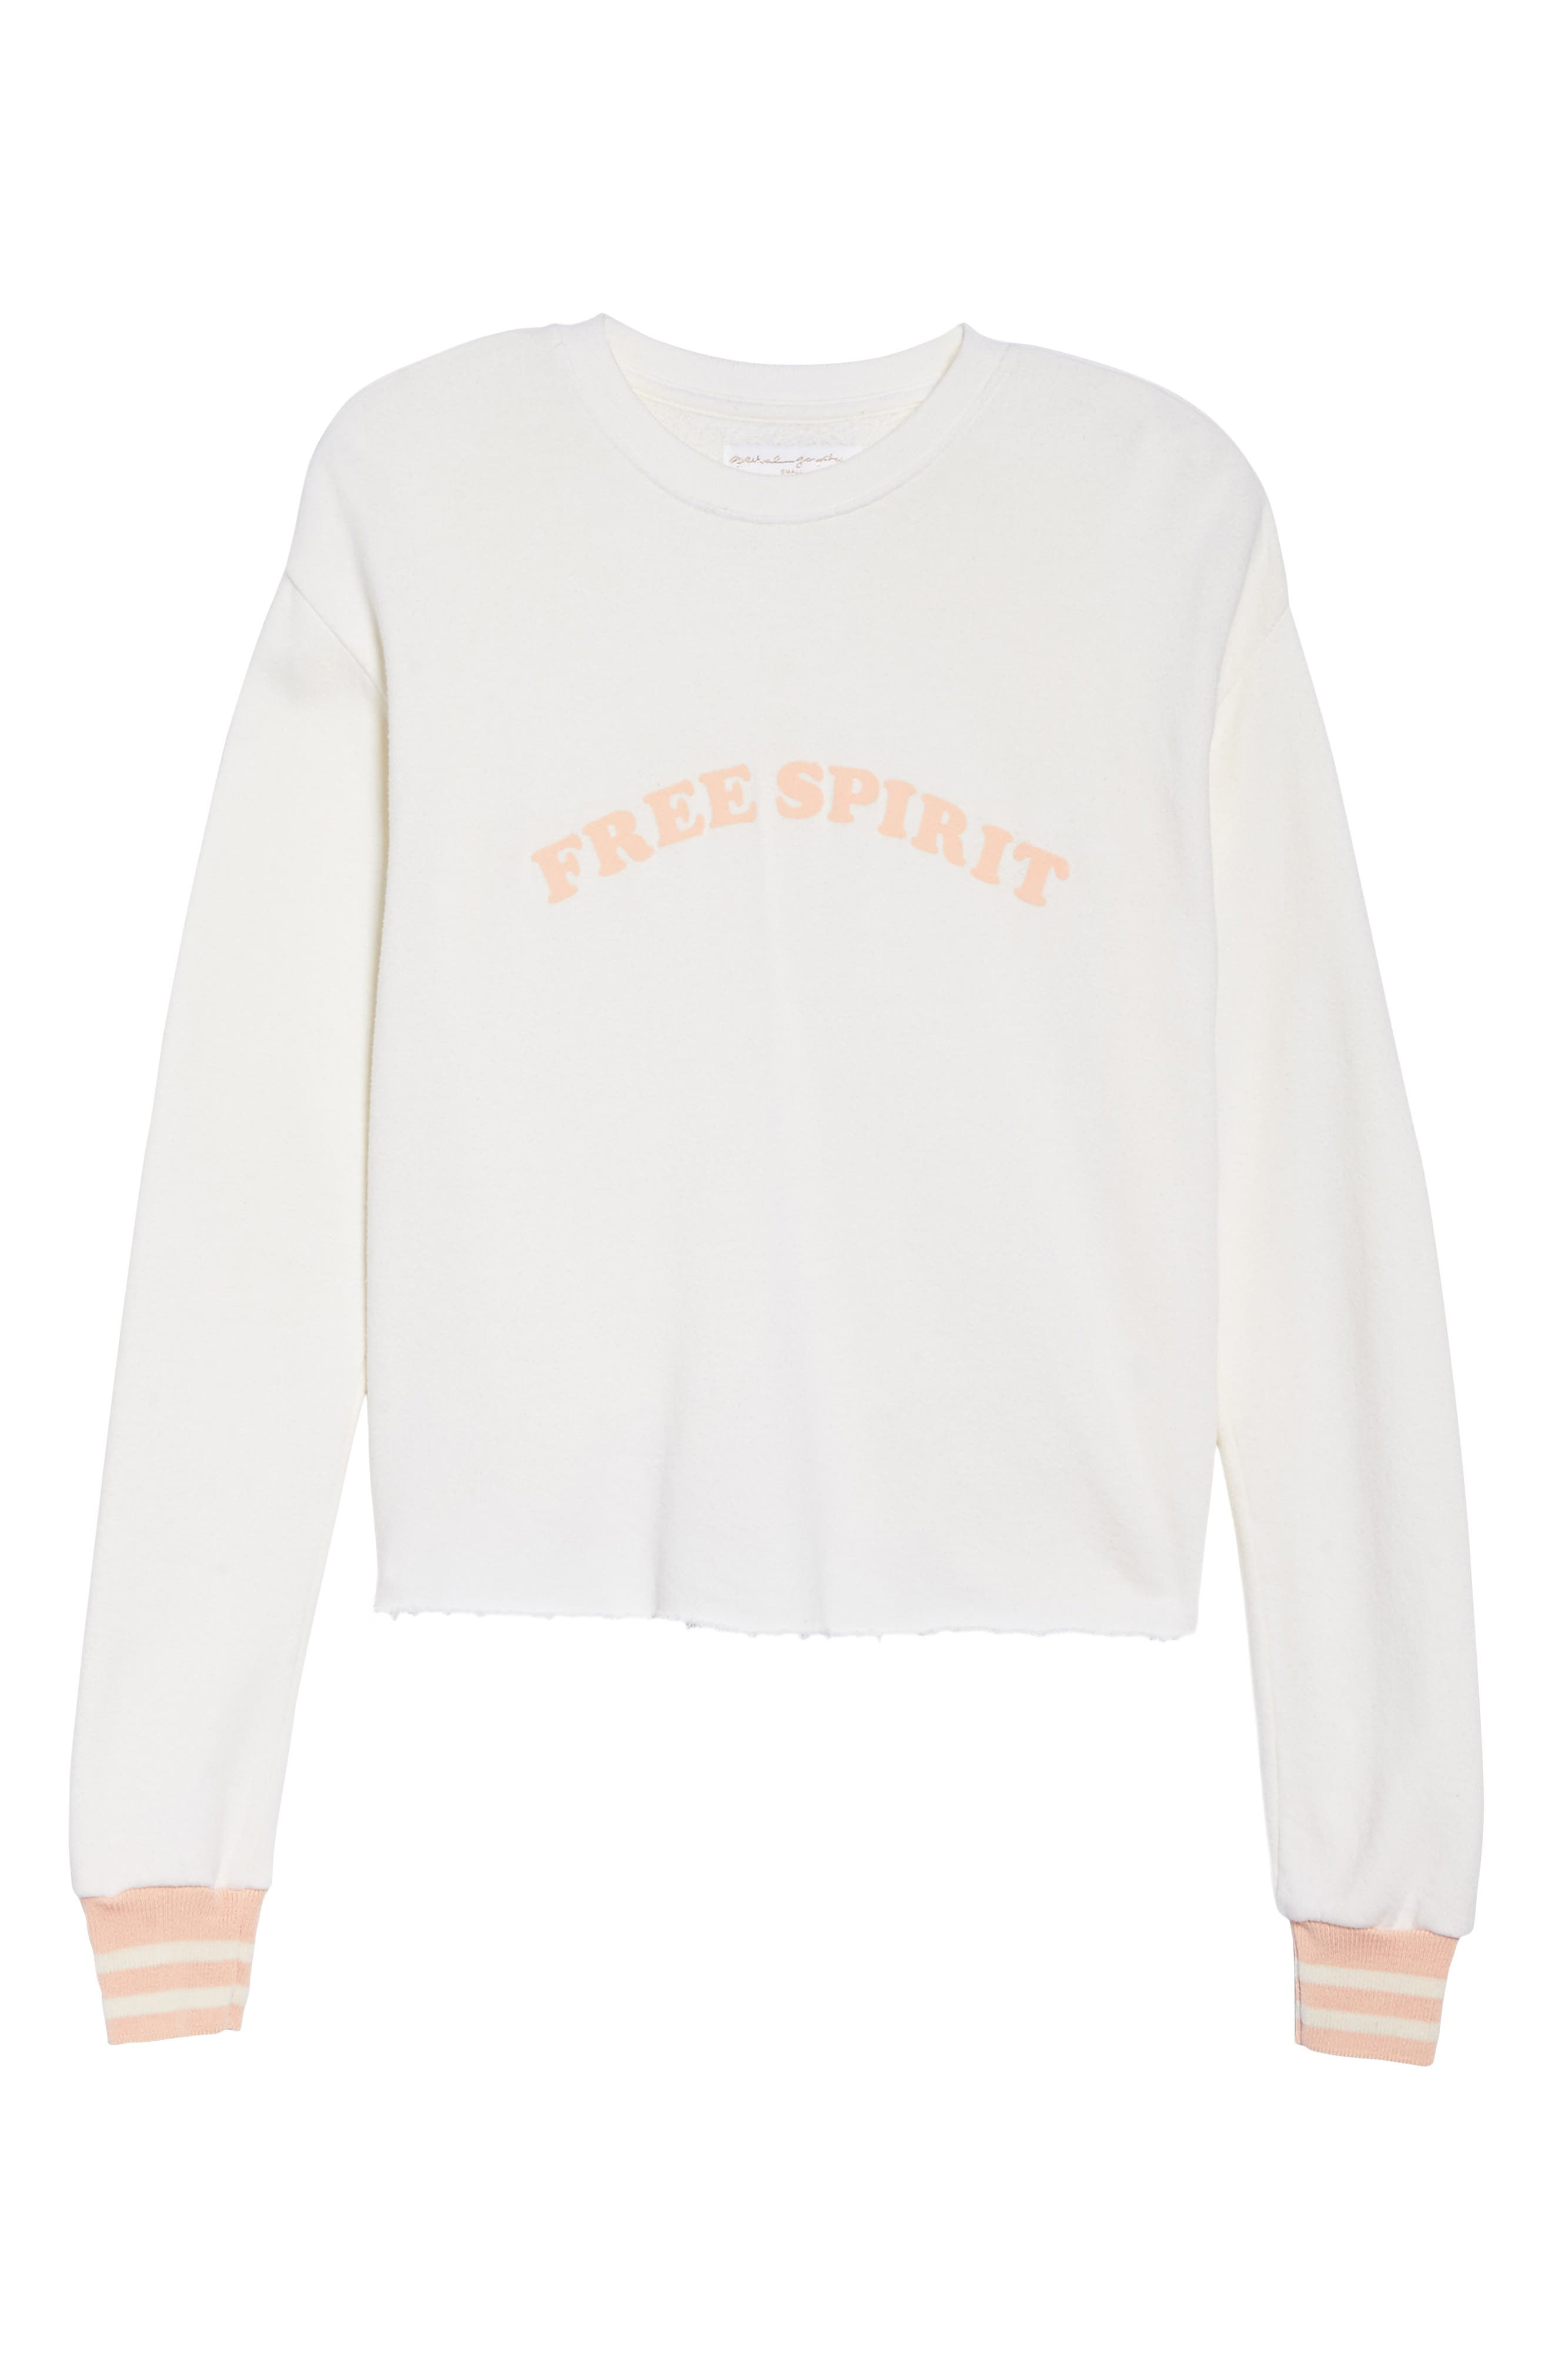 Free Spirit Crop Sweatshirt,                             Alternate thumbnail 7, color,                             Stardust